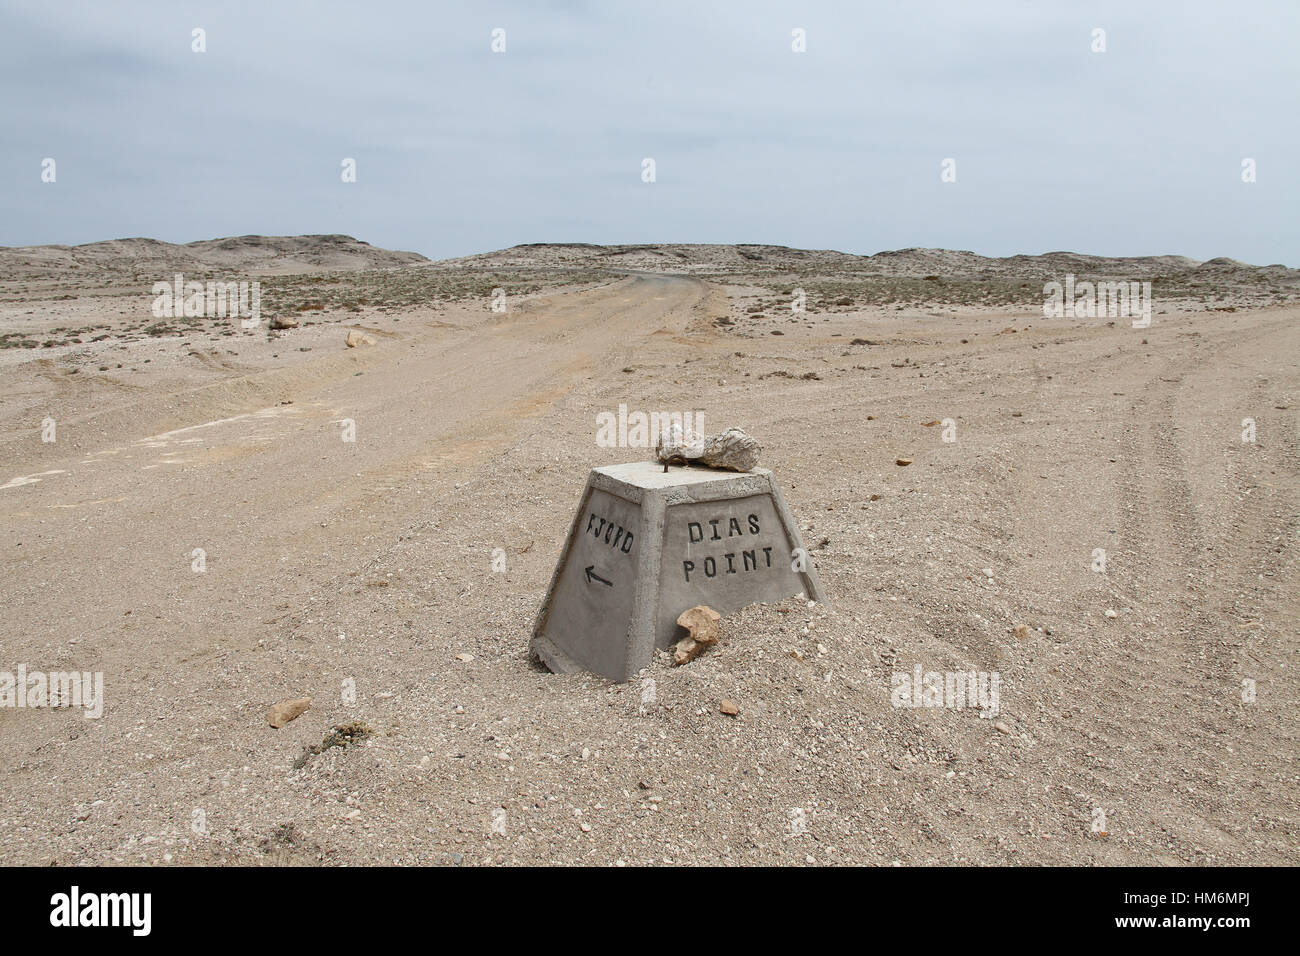 Gravel road to Diaz Point on the Luderitz Peninsula route - Stock Image